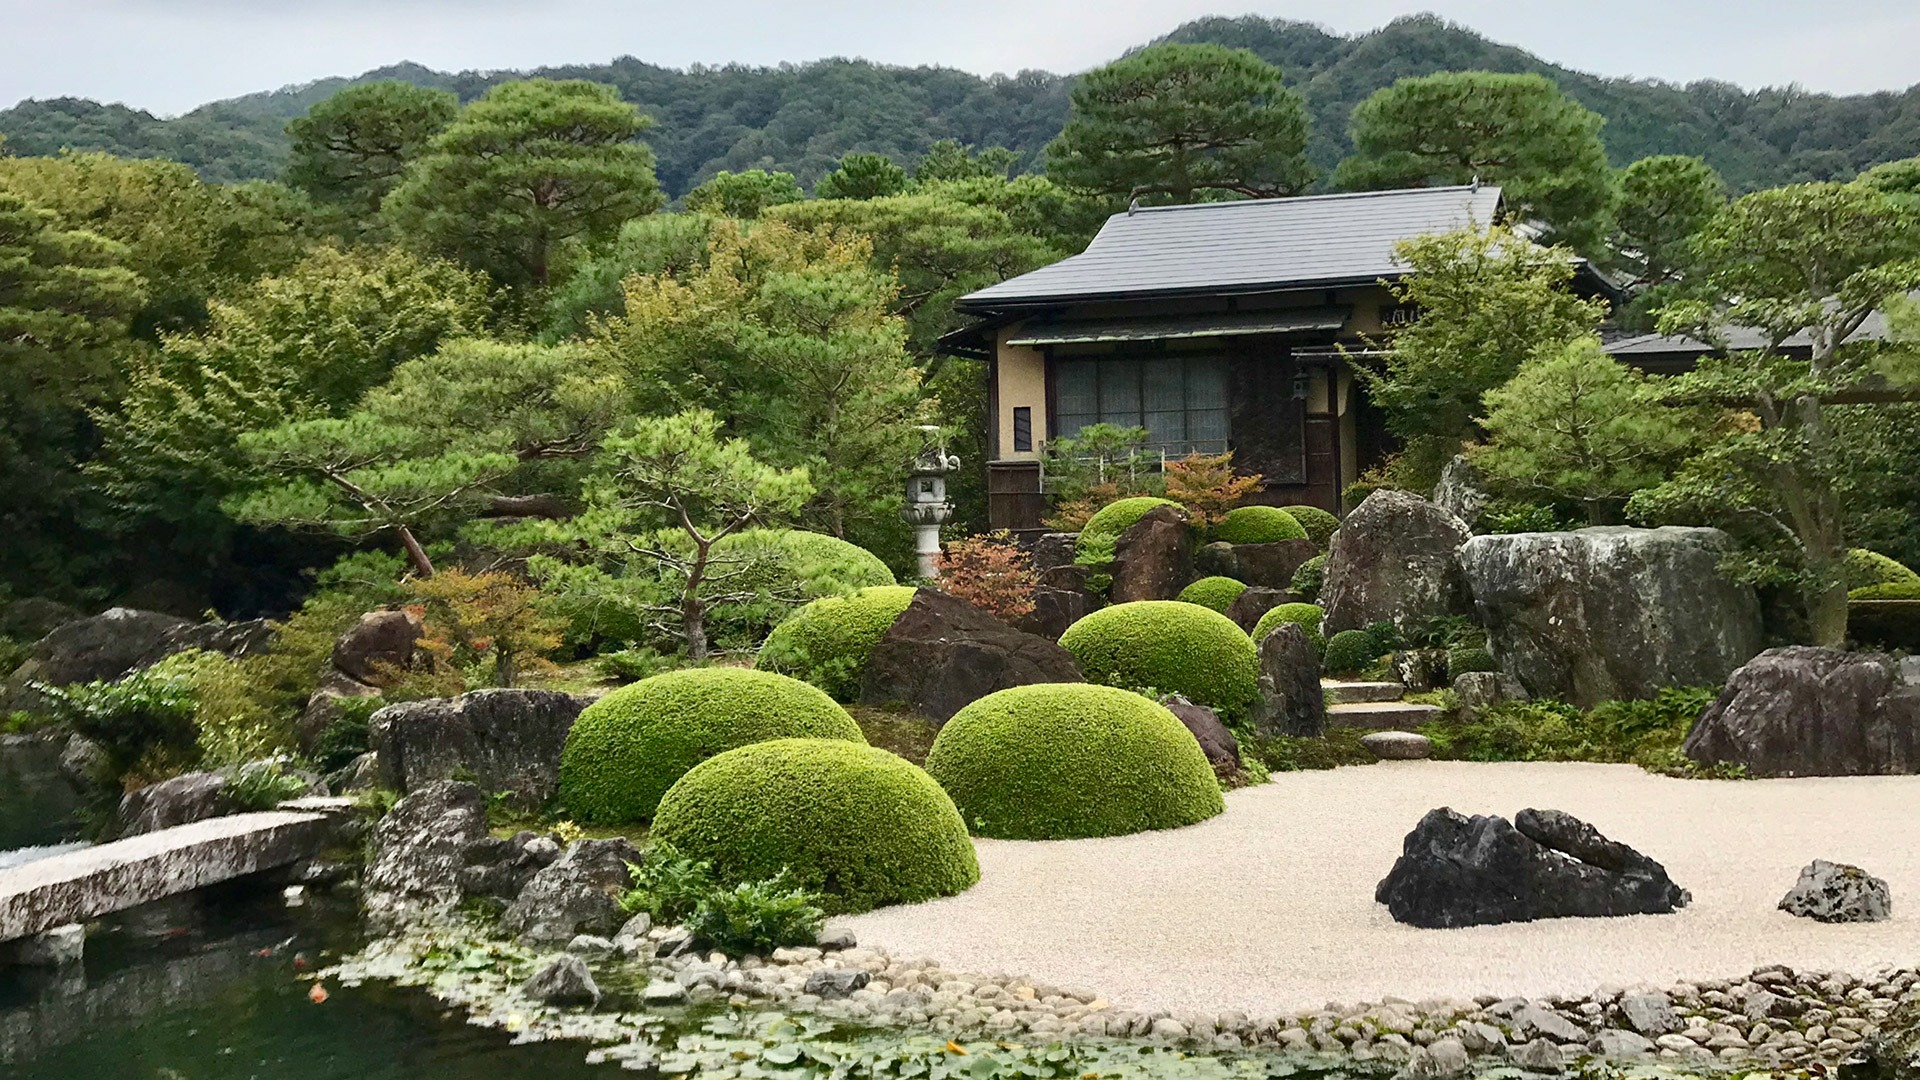 Gardens at the world-renowned Adachi Museum in Matsue, Japan